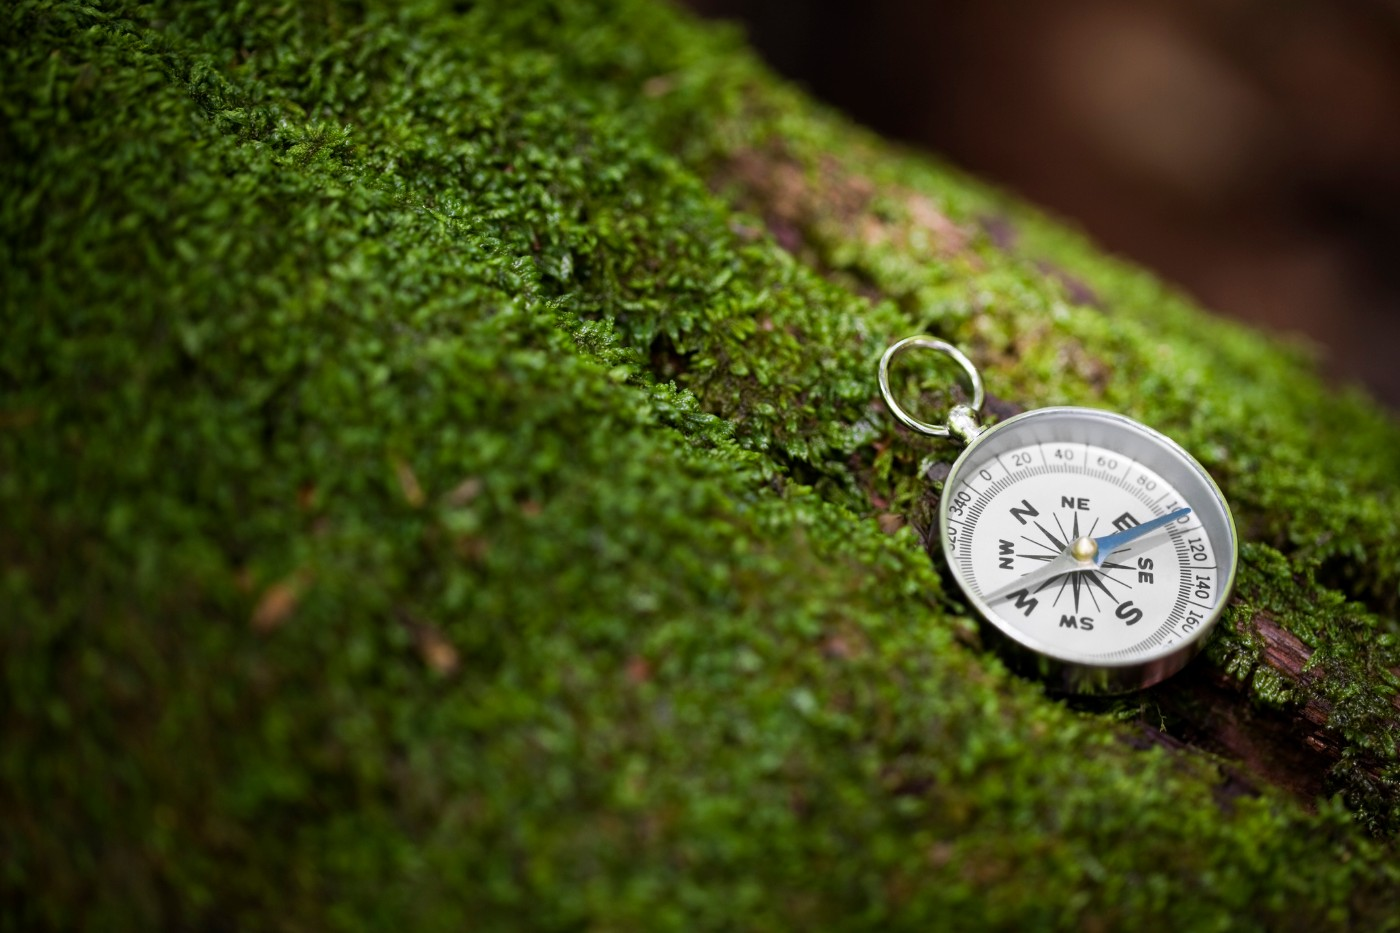 https://tickertapecdn.tdameritrade.com/assets/images/pages/md/compass in the woods: traditional vs. Roth IRA for retirement